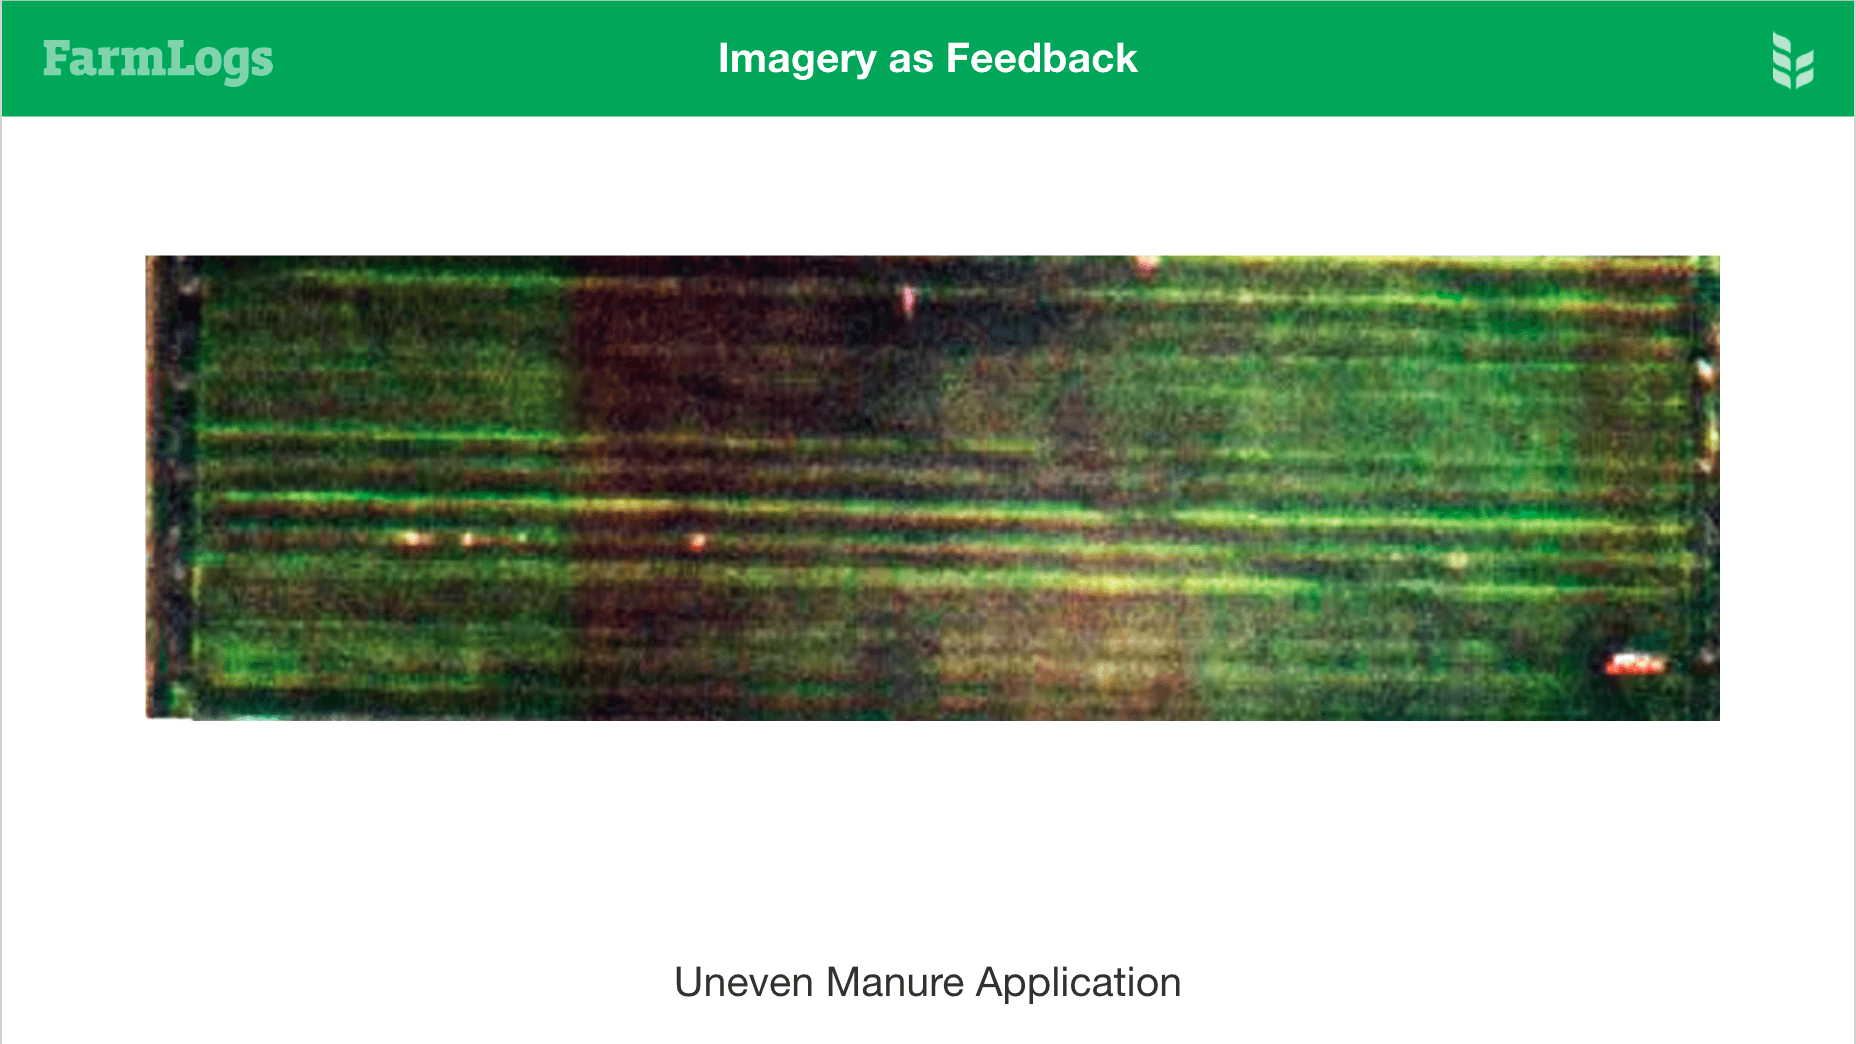 uneven manure application shown in imagery